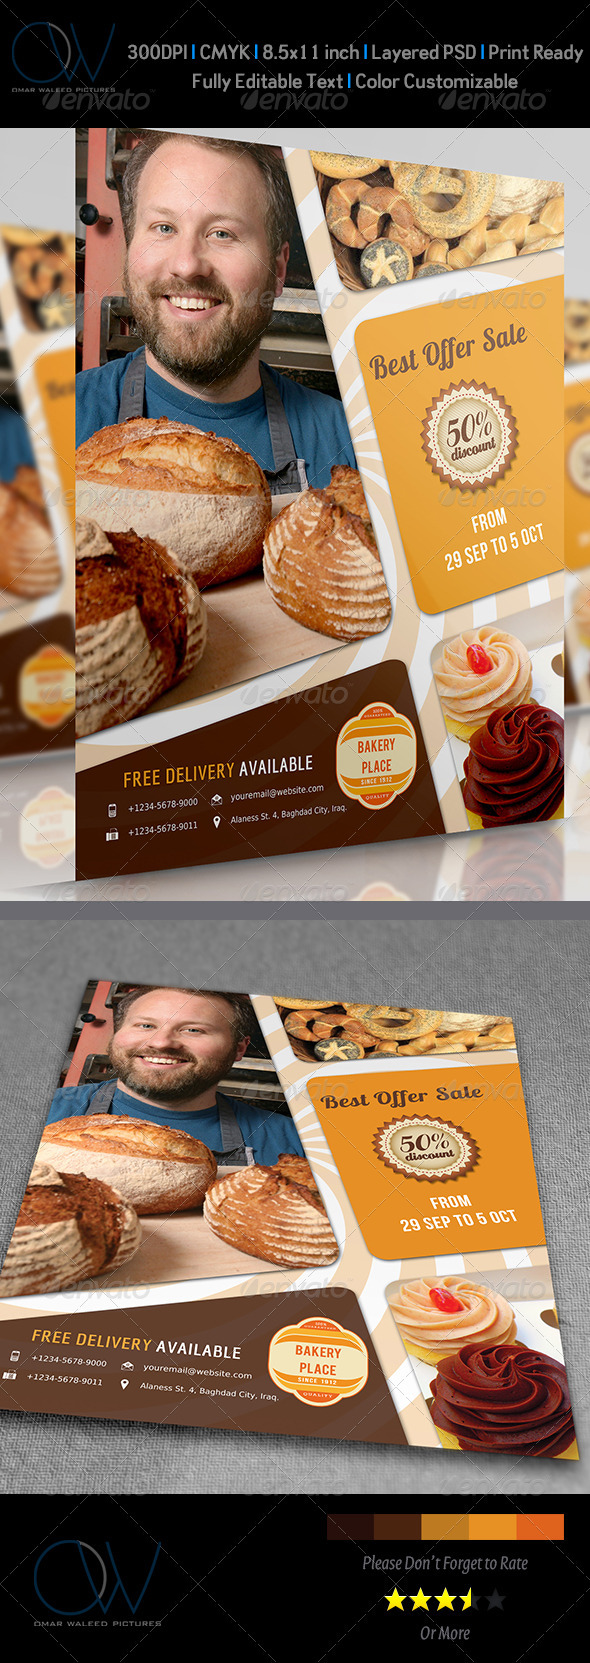 Bakery Flyer - Restaurant Flyers